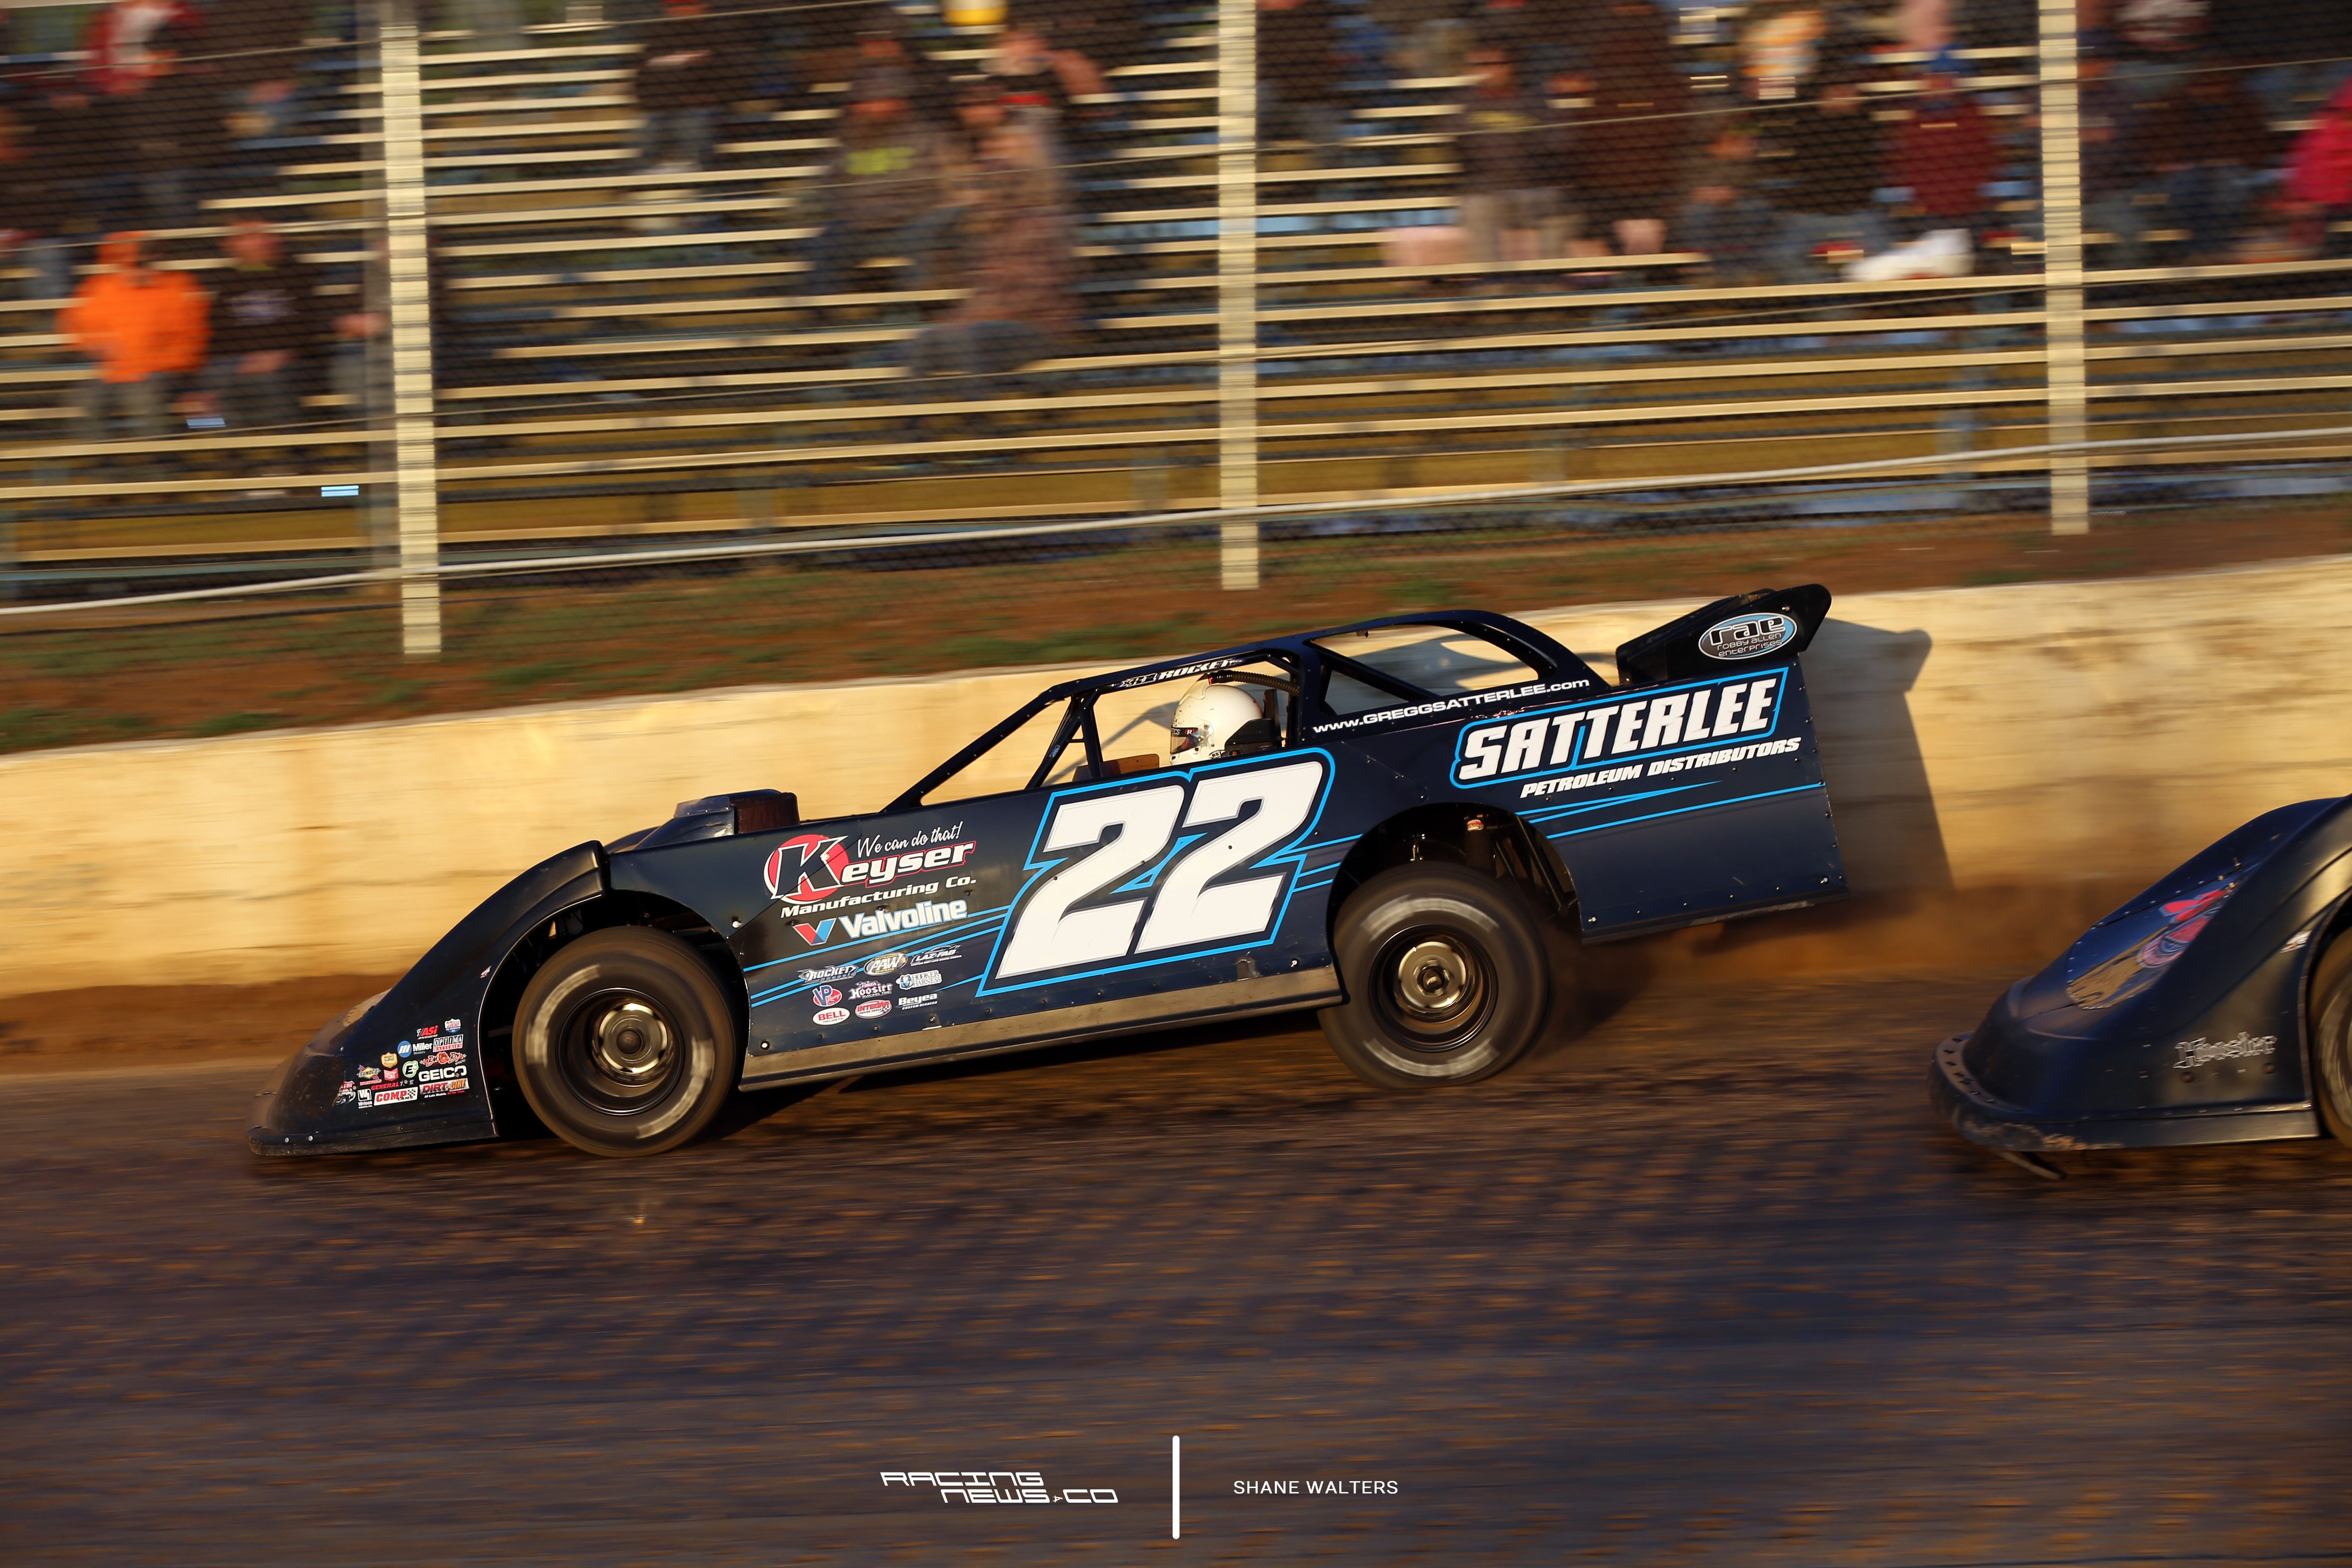 Gregg Satterlee talks about touring with the Lucas Oil Dirt Series https://racingnews.co/2017/05/18/gregg-satterlee-lucas-oil-late-model-dirt-series/ #greggsatterlee